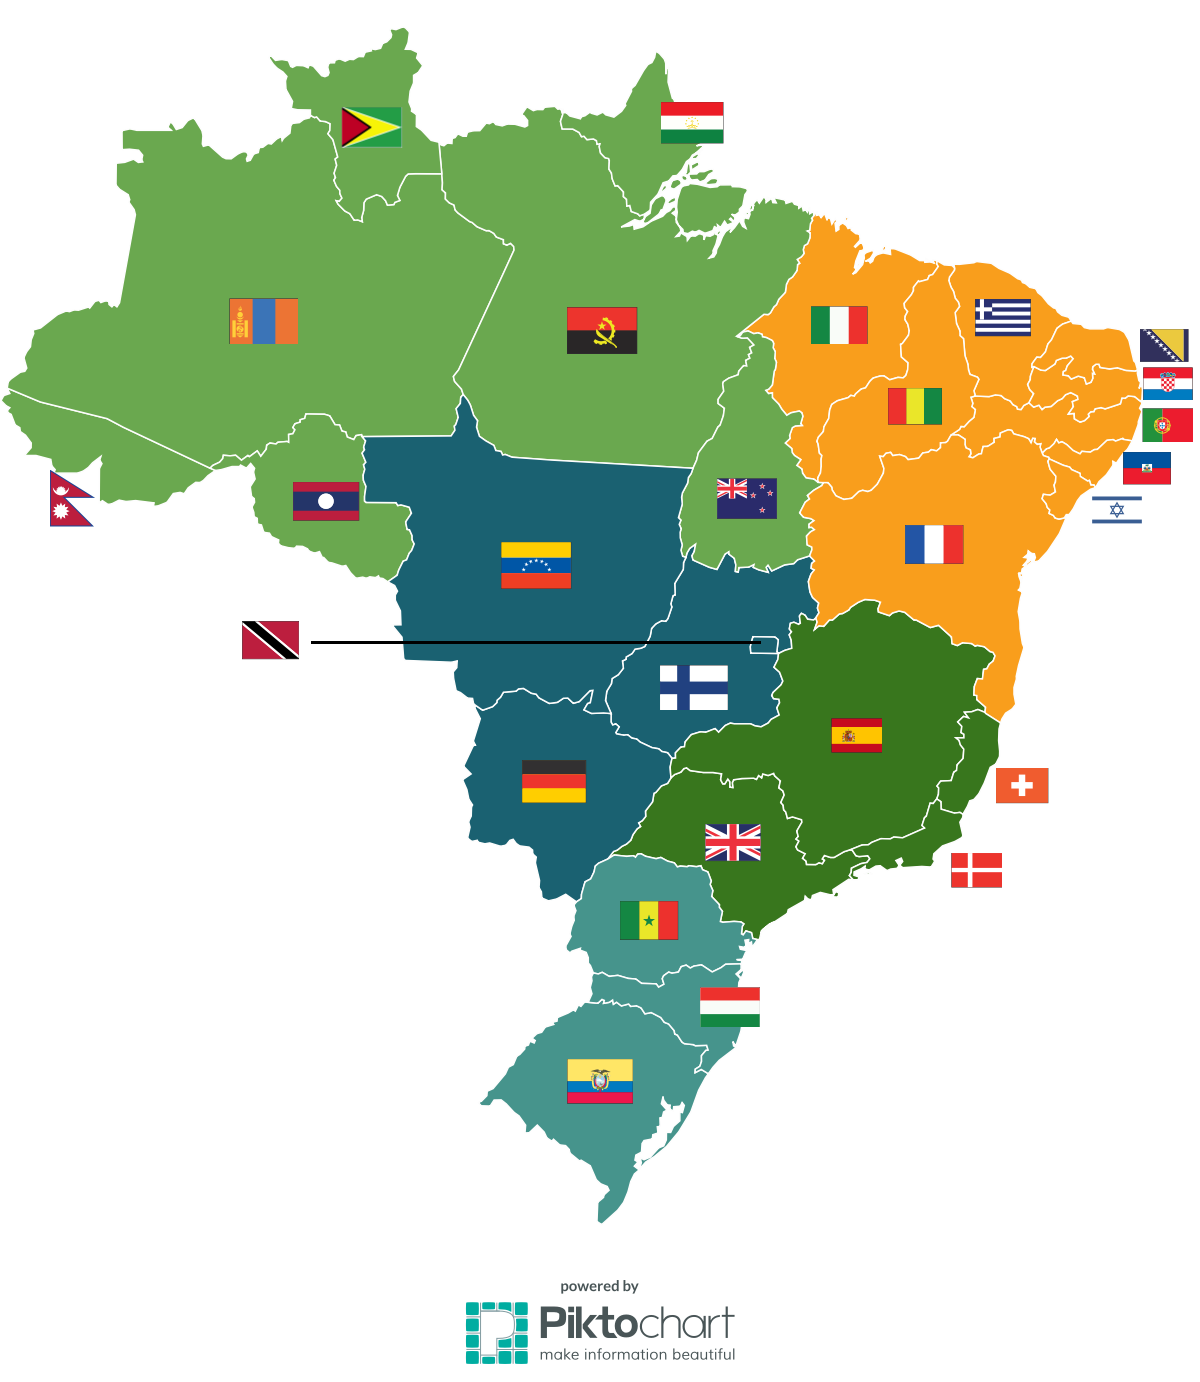 The real size of Brazilian states compared to other countries